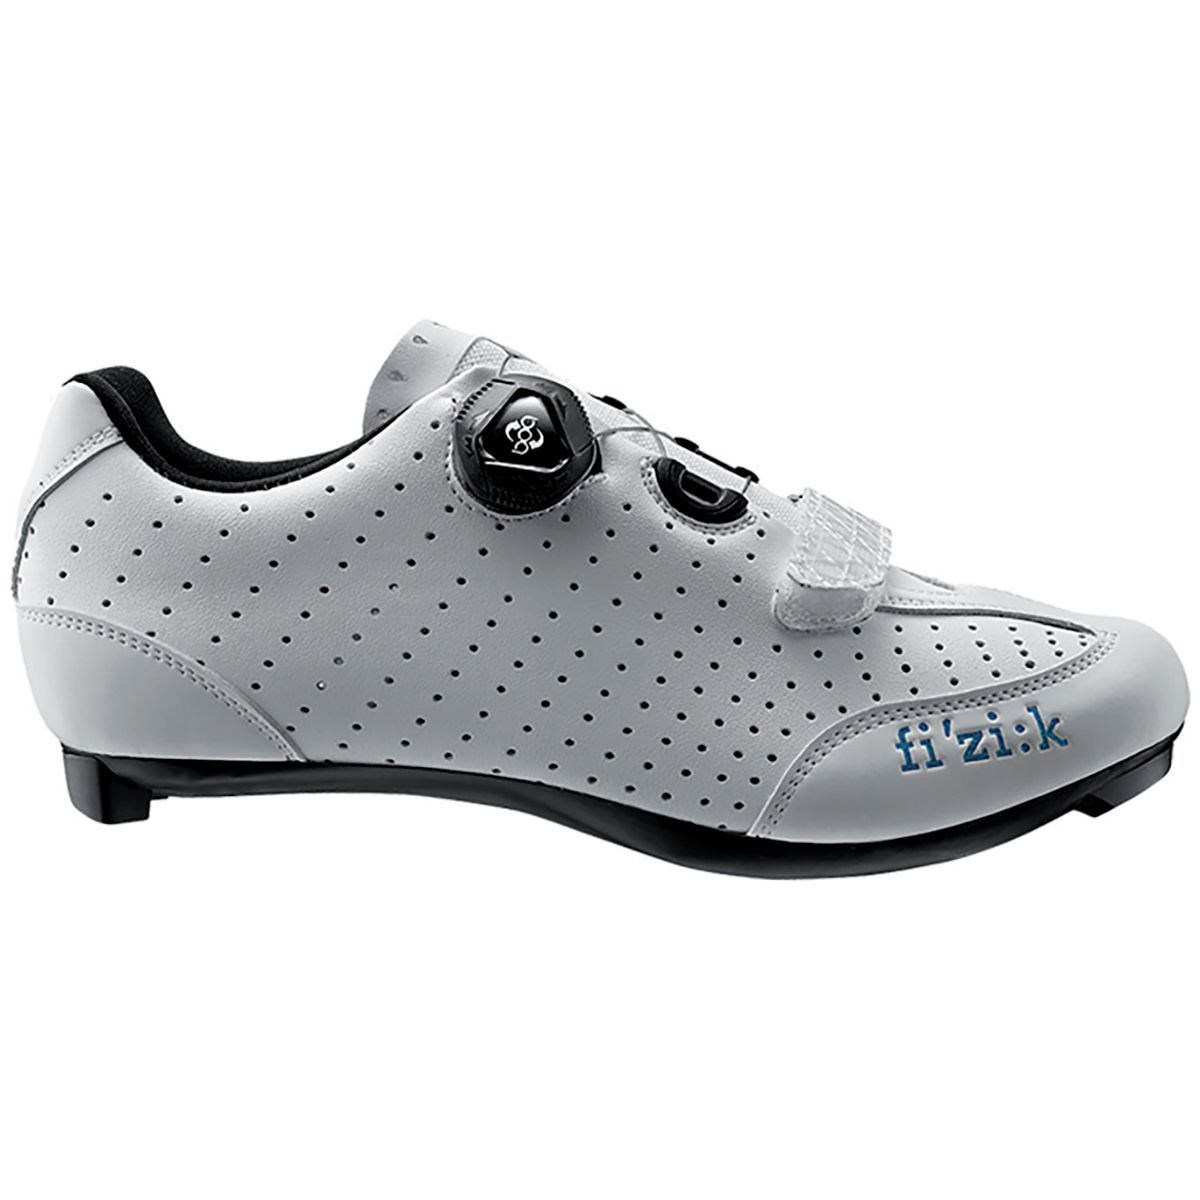 Fizik Women's R3B Donna Boa Road Sport Cycling Shoes - White/Turquoise (White with Turquoise Trim - 41.5)